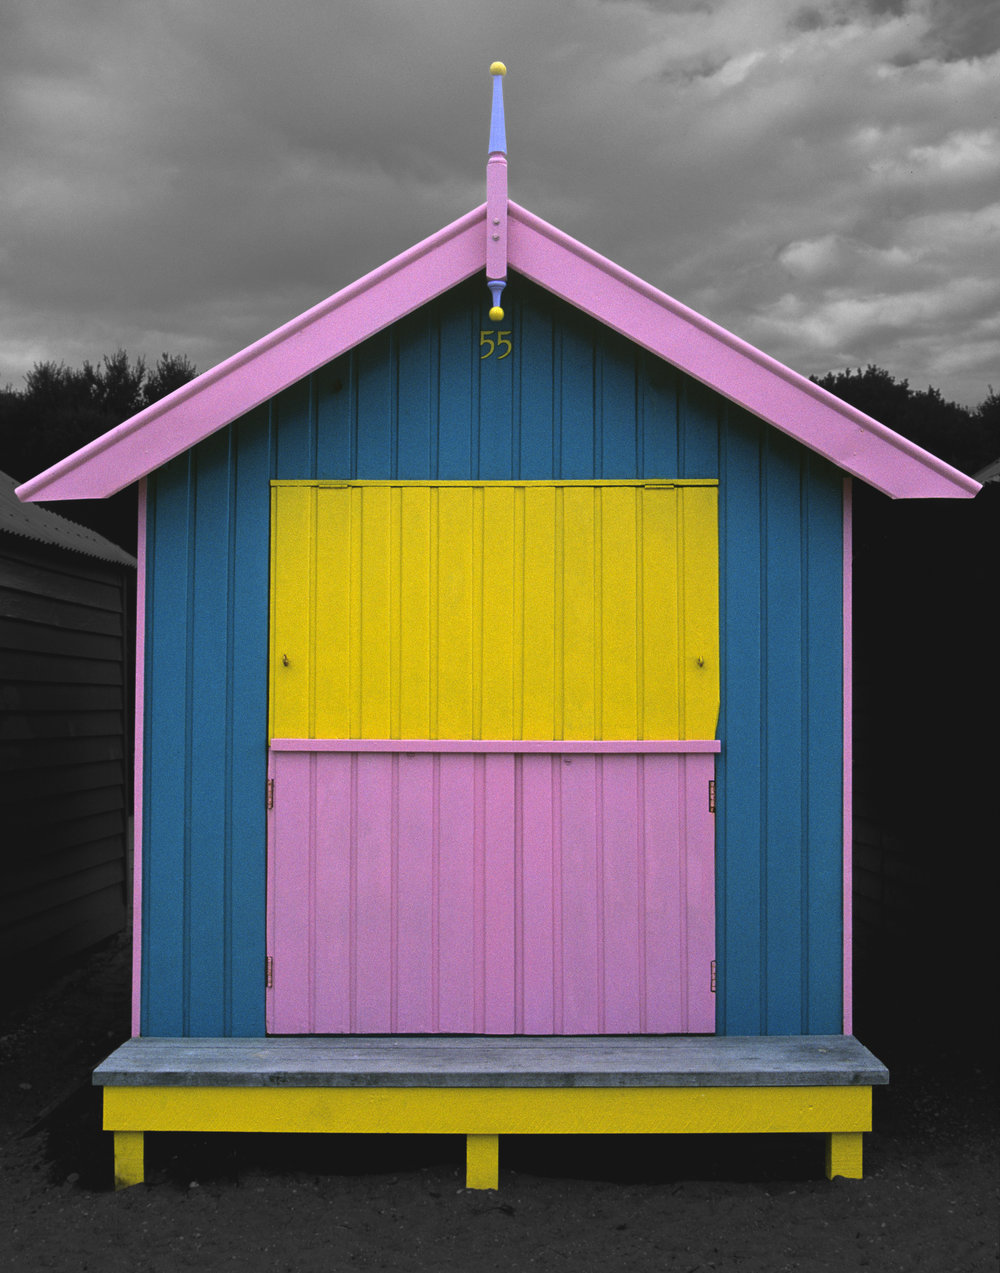 Judy Gelles,  Beach Box No. 55 , 2003  Digital pigment print, 8 x 10 in, edition of 20; 11 x 14 in, edition of 25; 16 x 20 in, edition of 25   Inquire